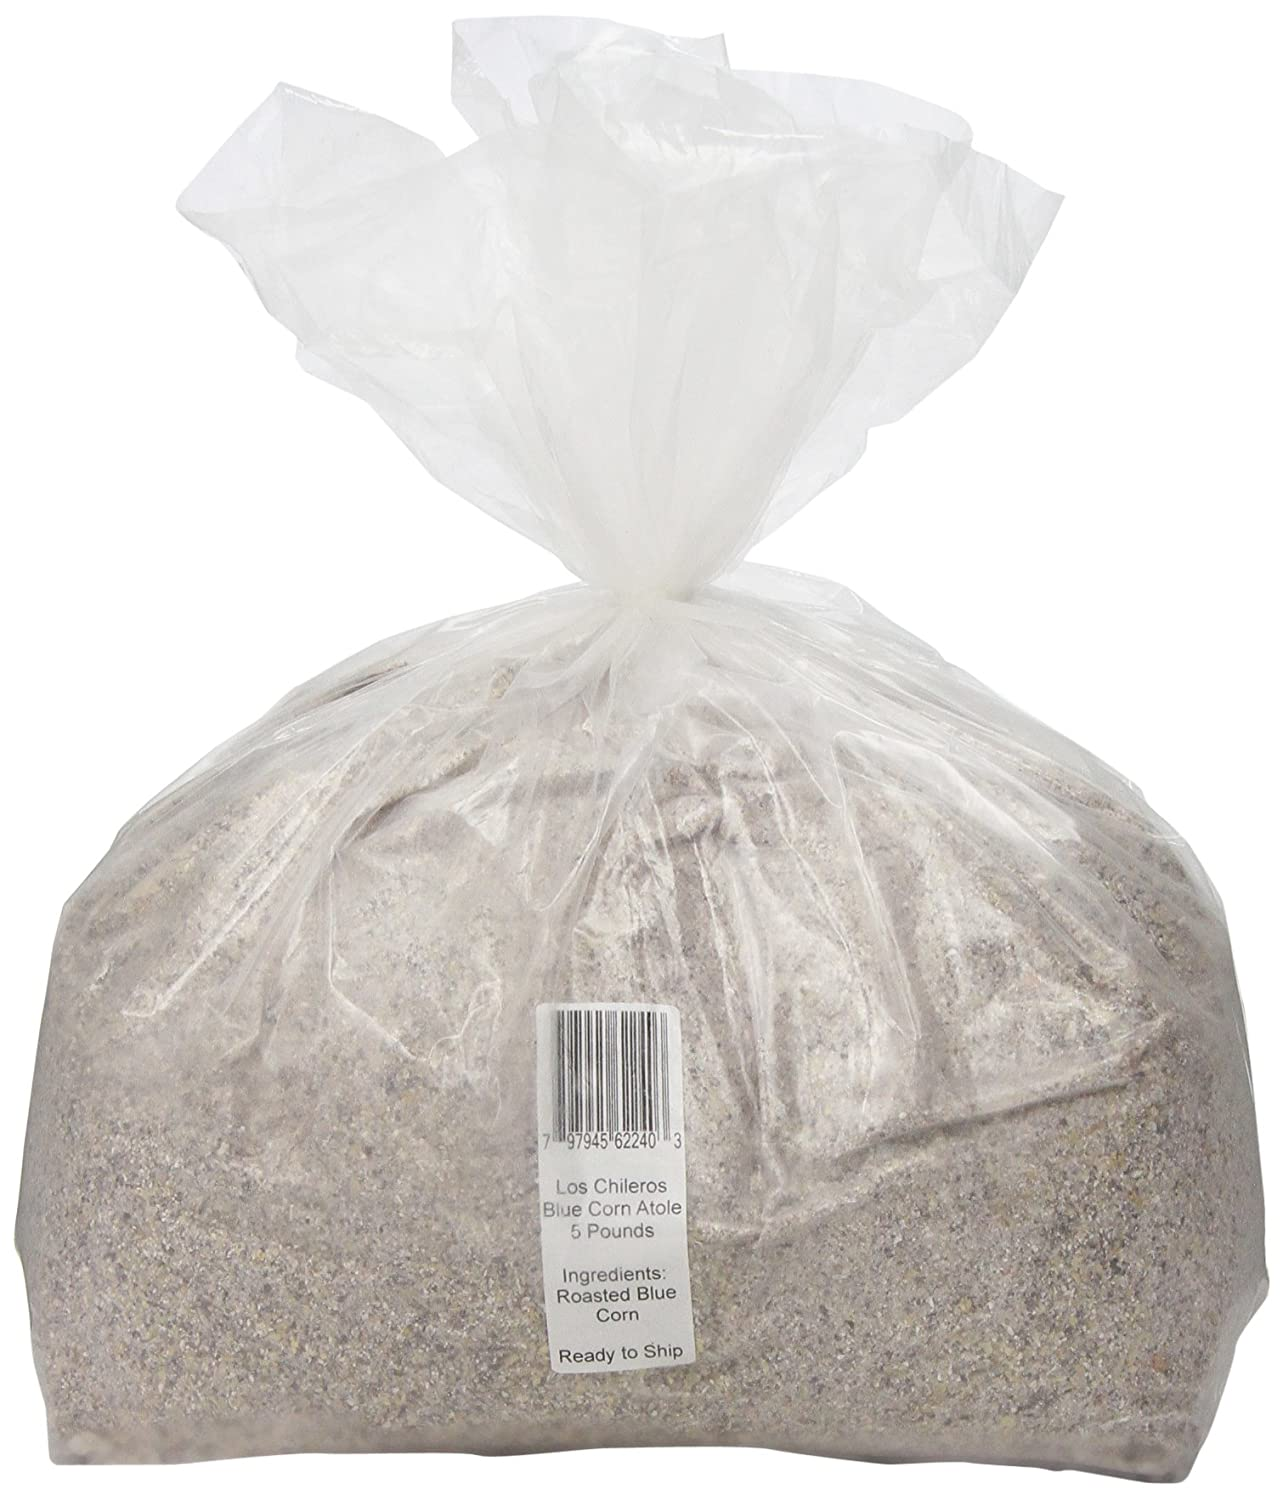 Amazon.com : Los Chileros Blue Corn Atole, 5 Pound : Corn Meals : Grocery & Gourmet Food